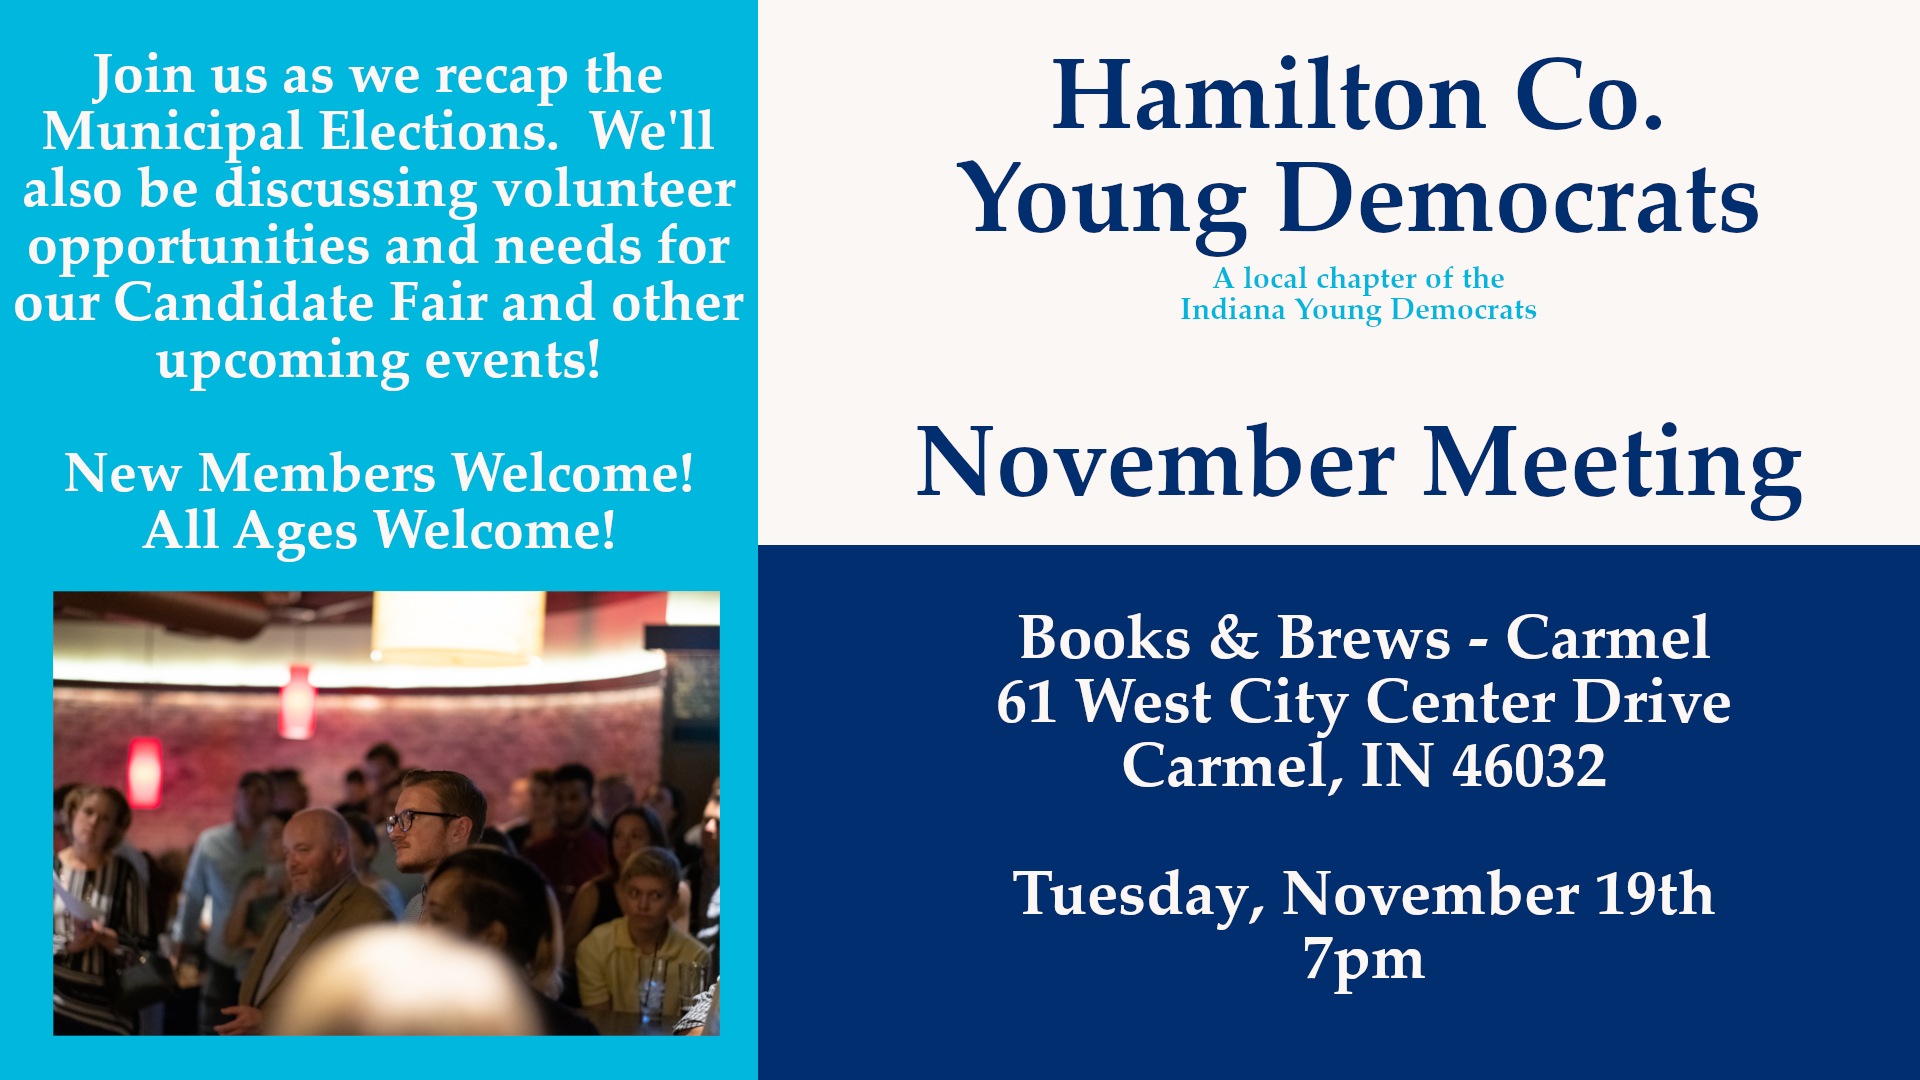 November Meeting Information for Municipal Election Recap at Books & Brews in Carmel by Hamilton County Young Democrats November 19th 7pm 2019